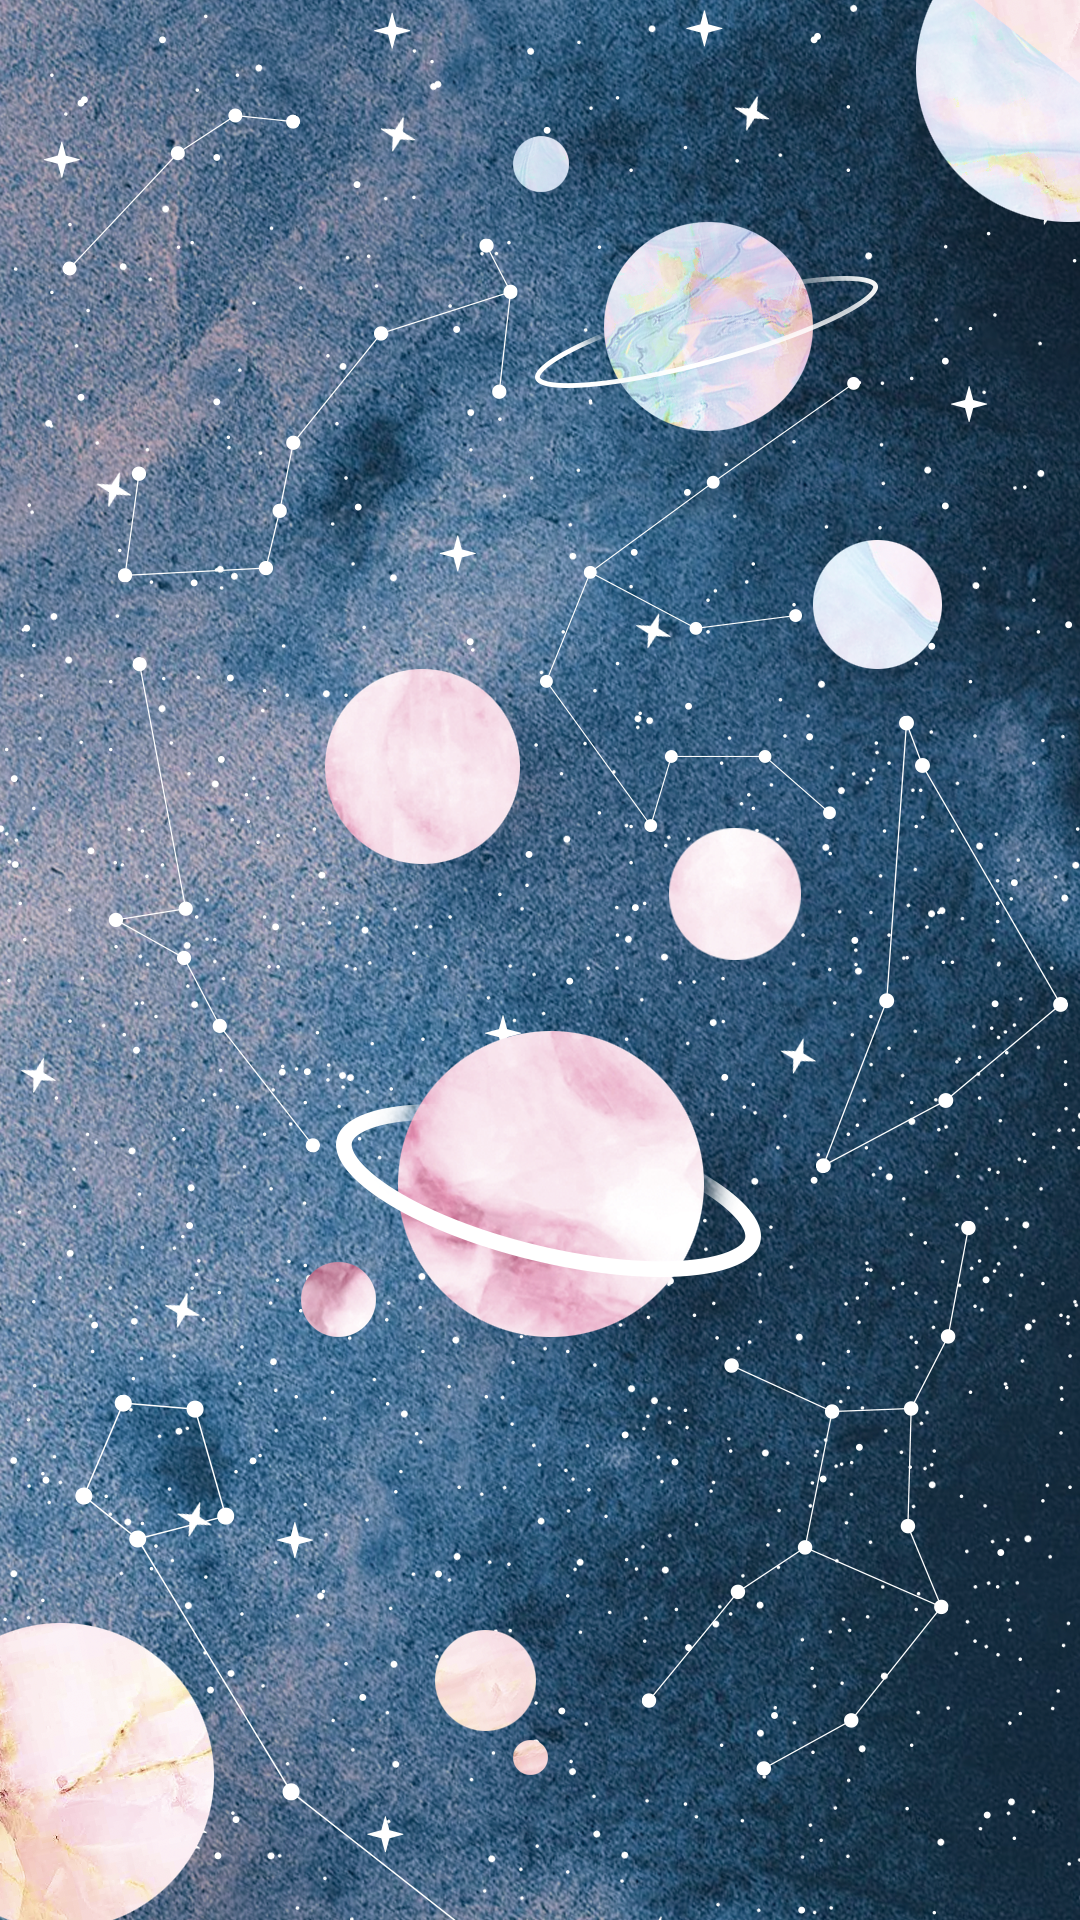 1080x1920 - Space Wallpaper and Screensavers 10